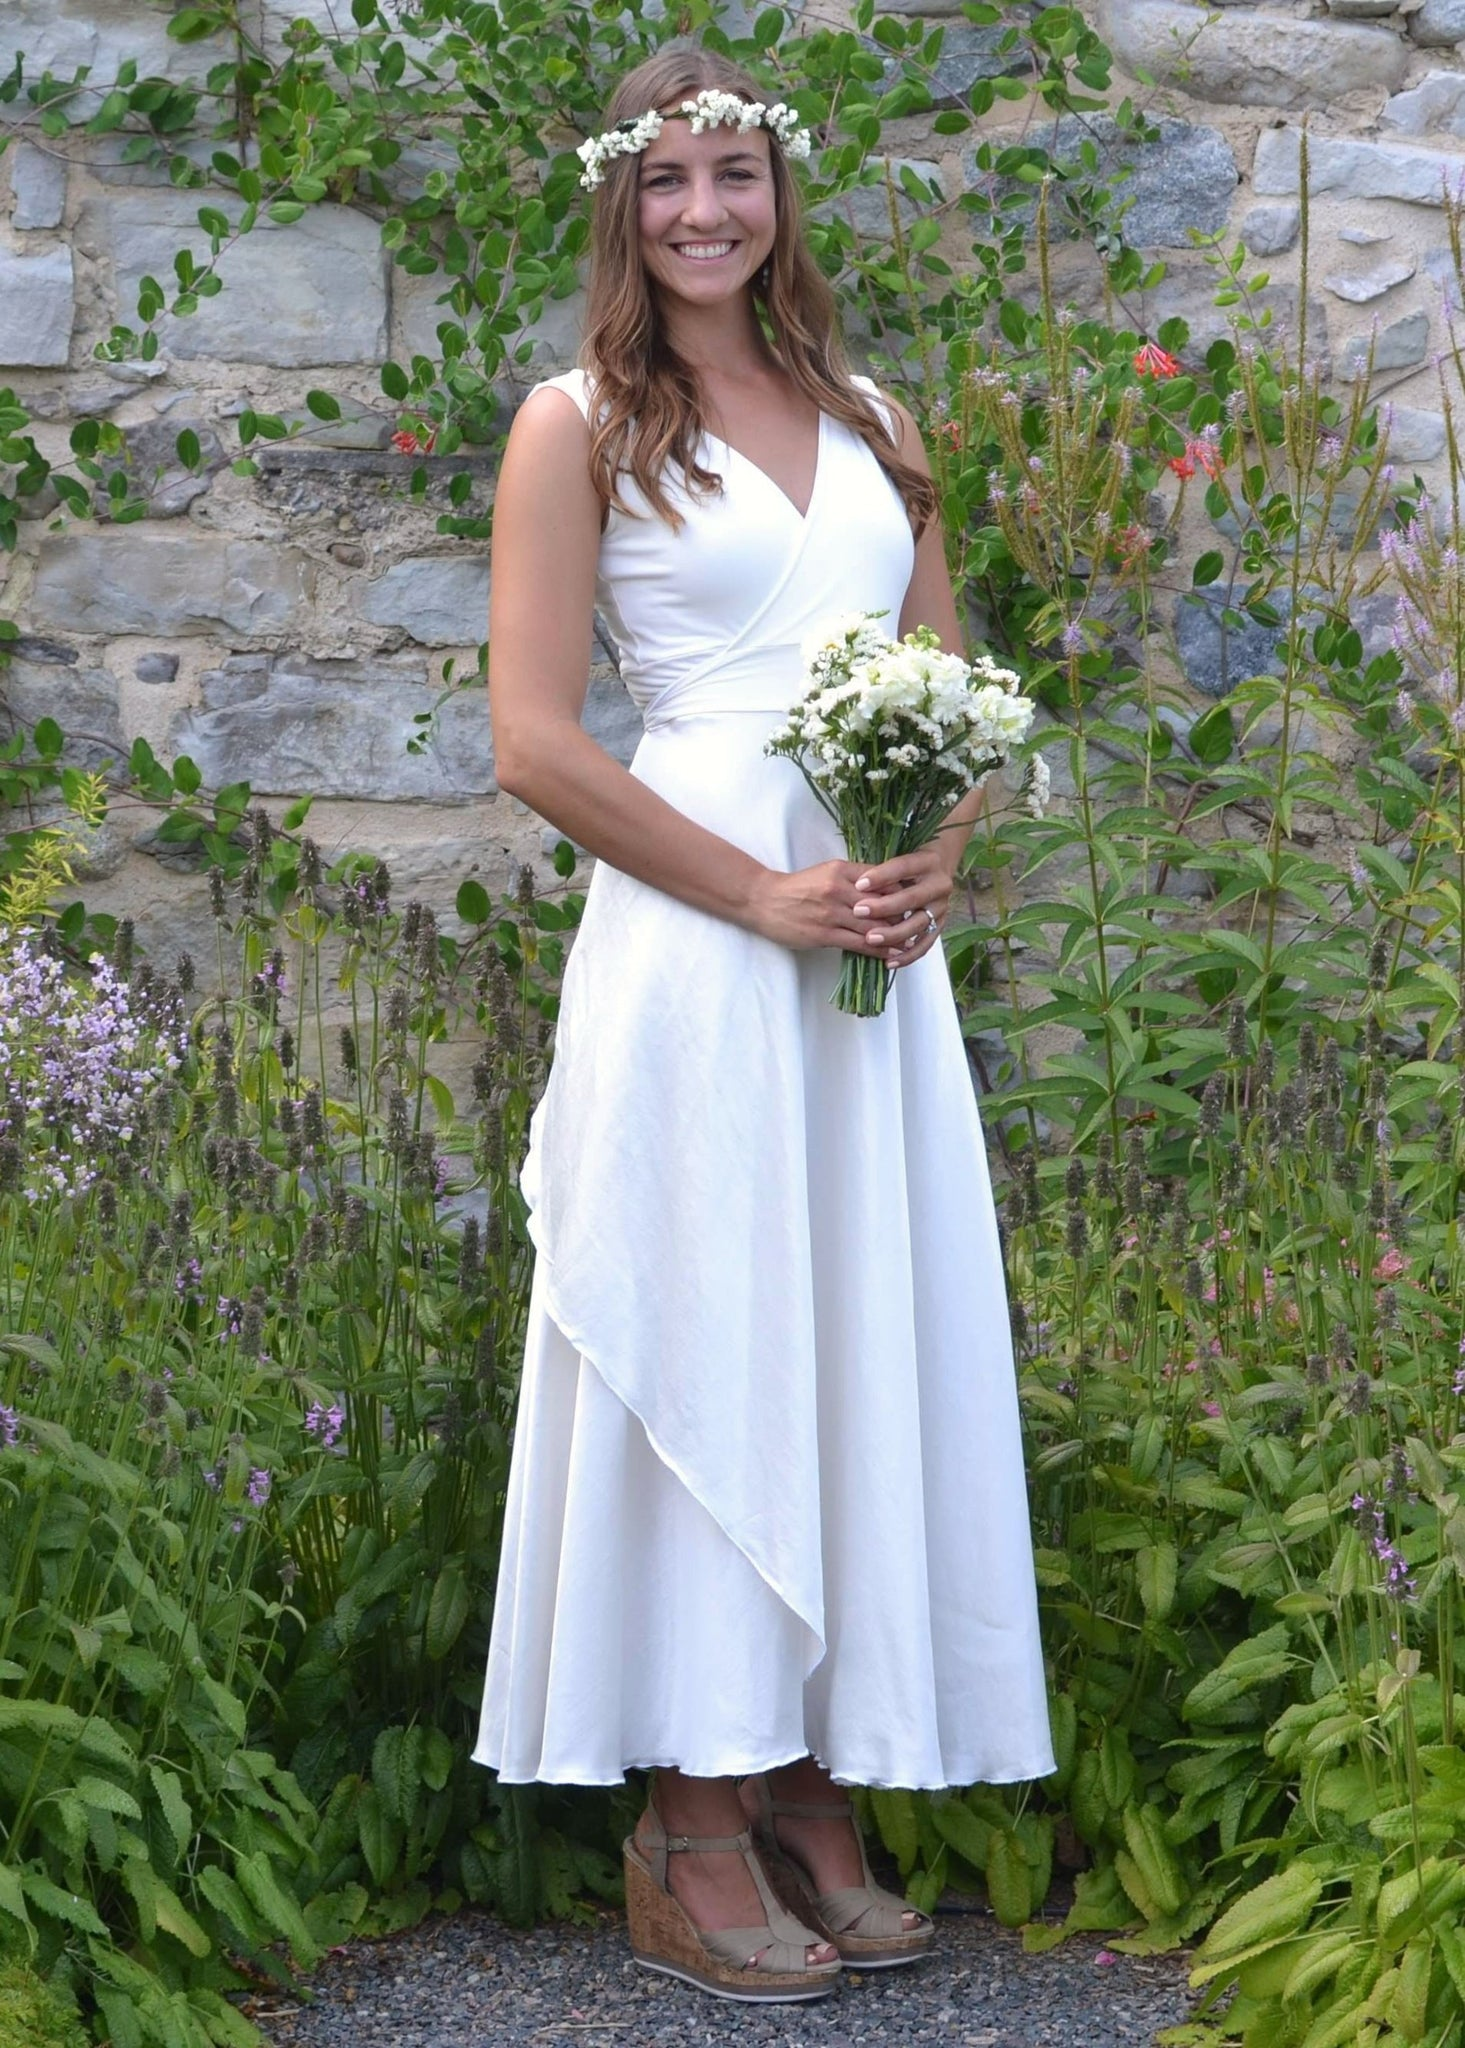 Custom Made Silk Wrap Wedding Dress - Custom Made - Vivian Bridal Gown - Handmade Organic Clothing